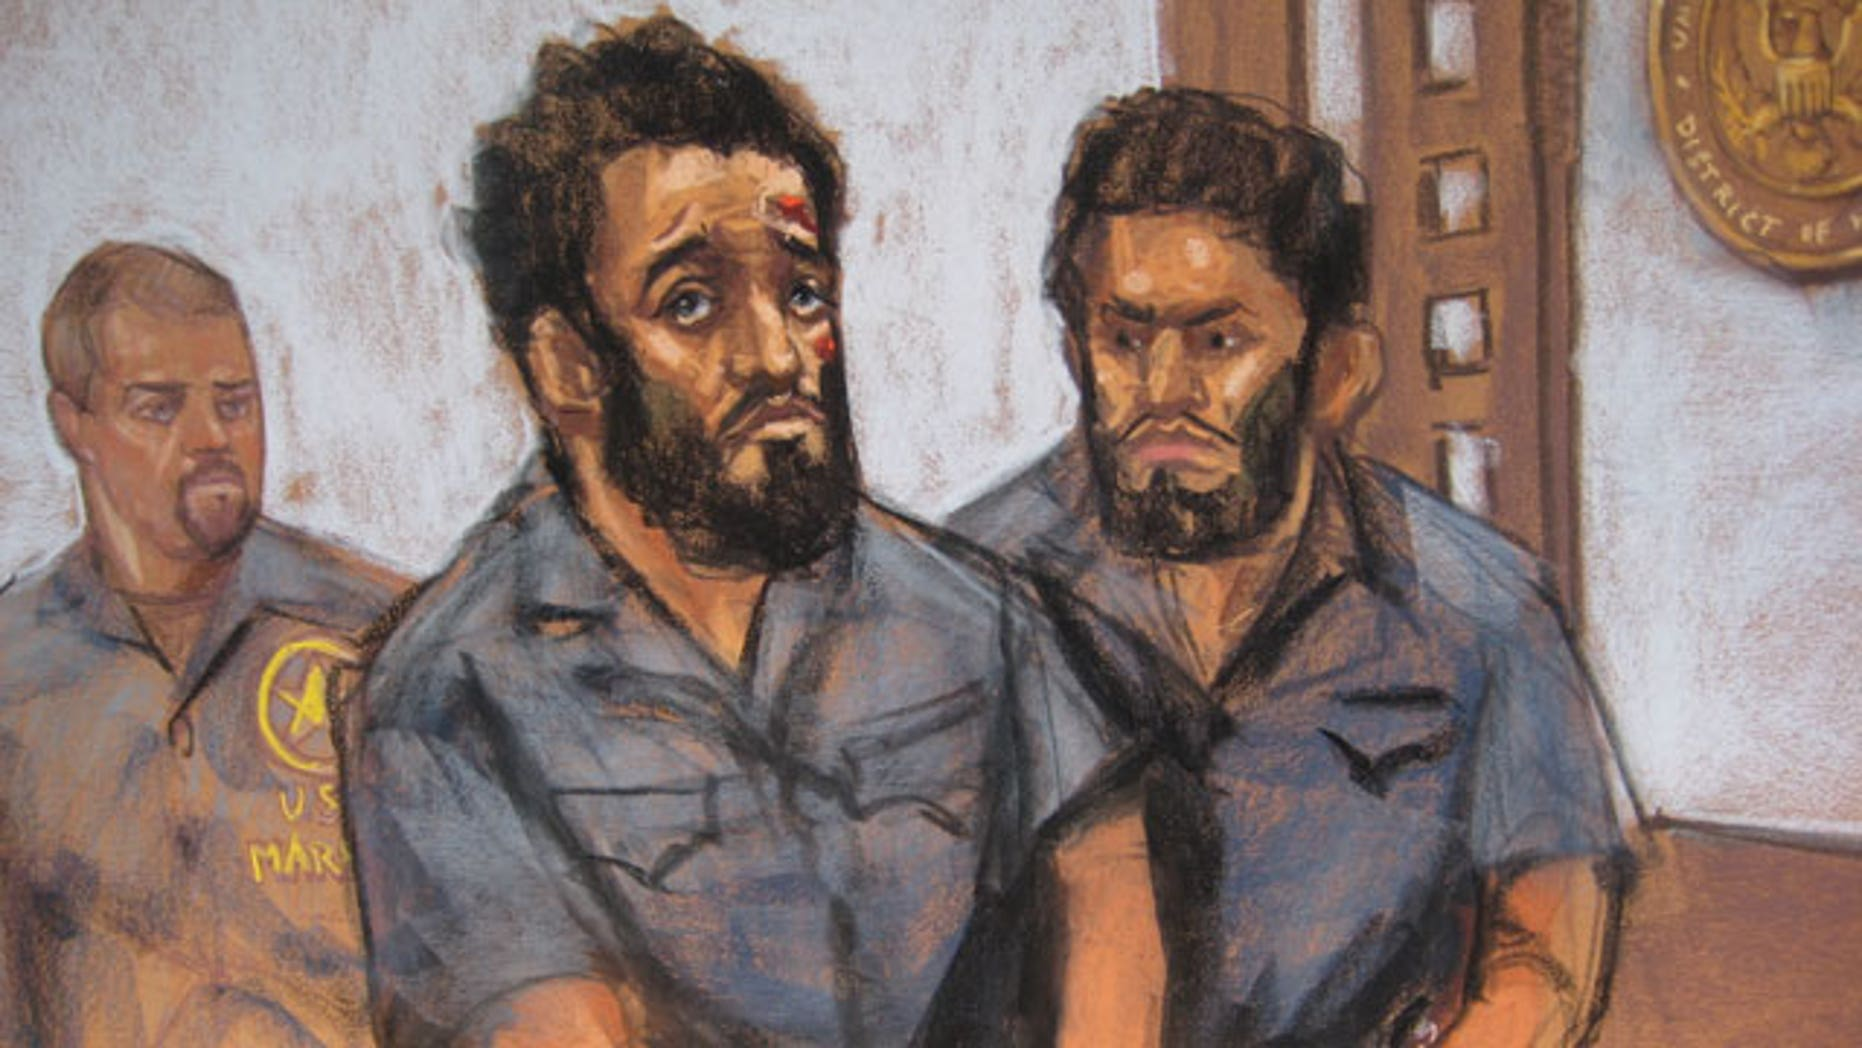 A courtroom sketch of Mohamed Mahmood Alessa, 20, and Carlos Eduardo Almonte, 24, who appeared in federal court Monday in Newark, N.J. The two face charges of conspiring to kill, maim and kidnap persons outside the United States by joining terrorist group al-Shabab.